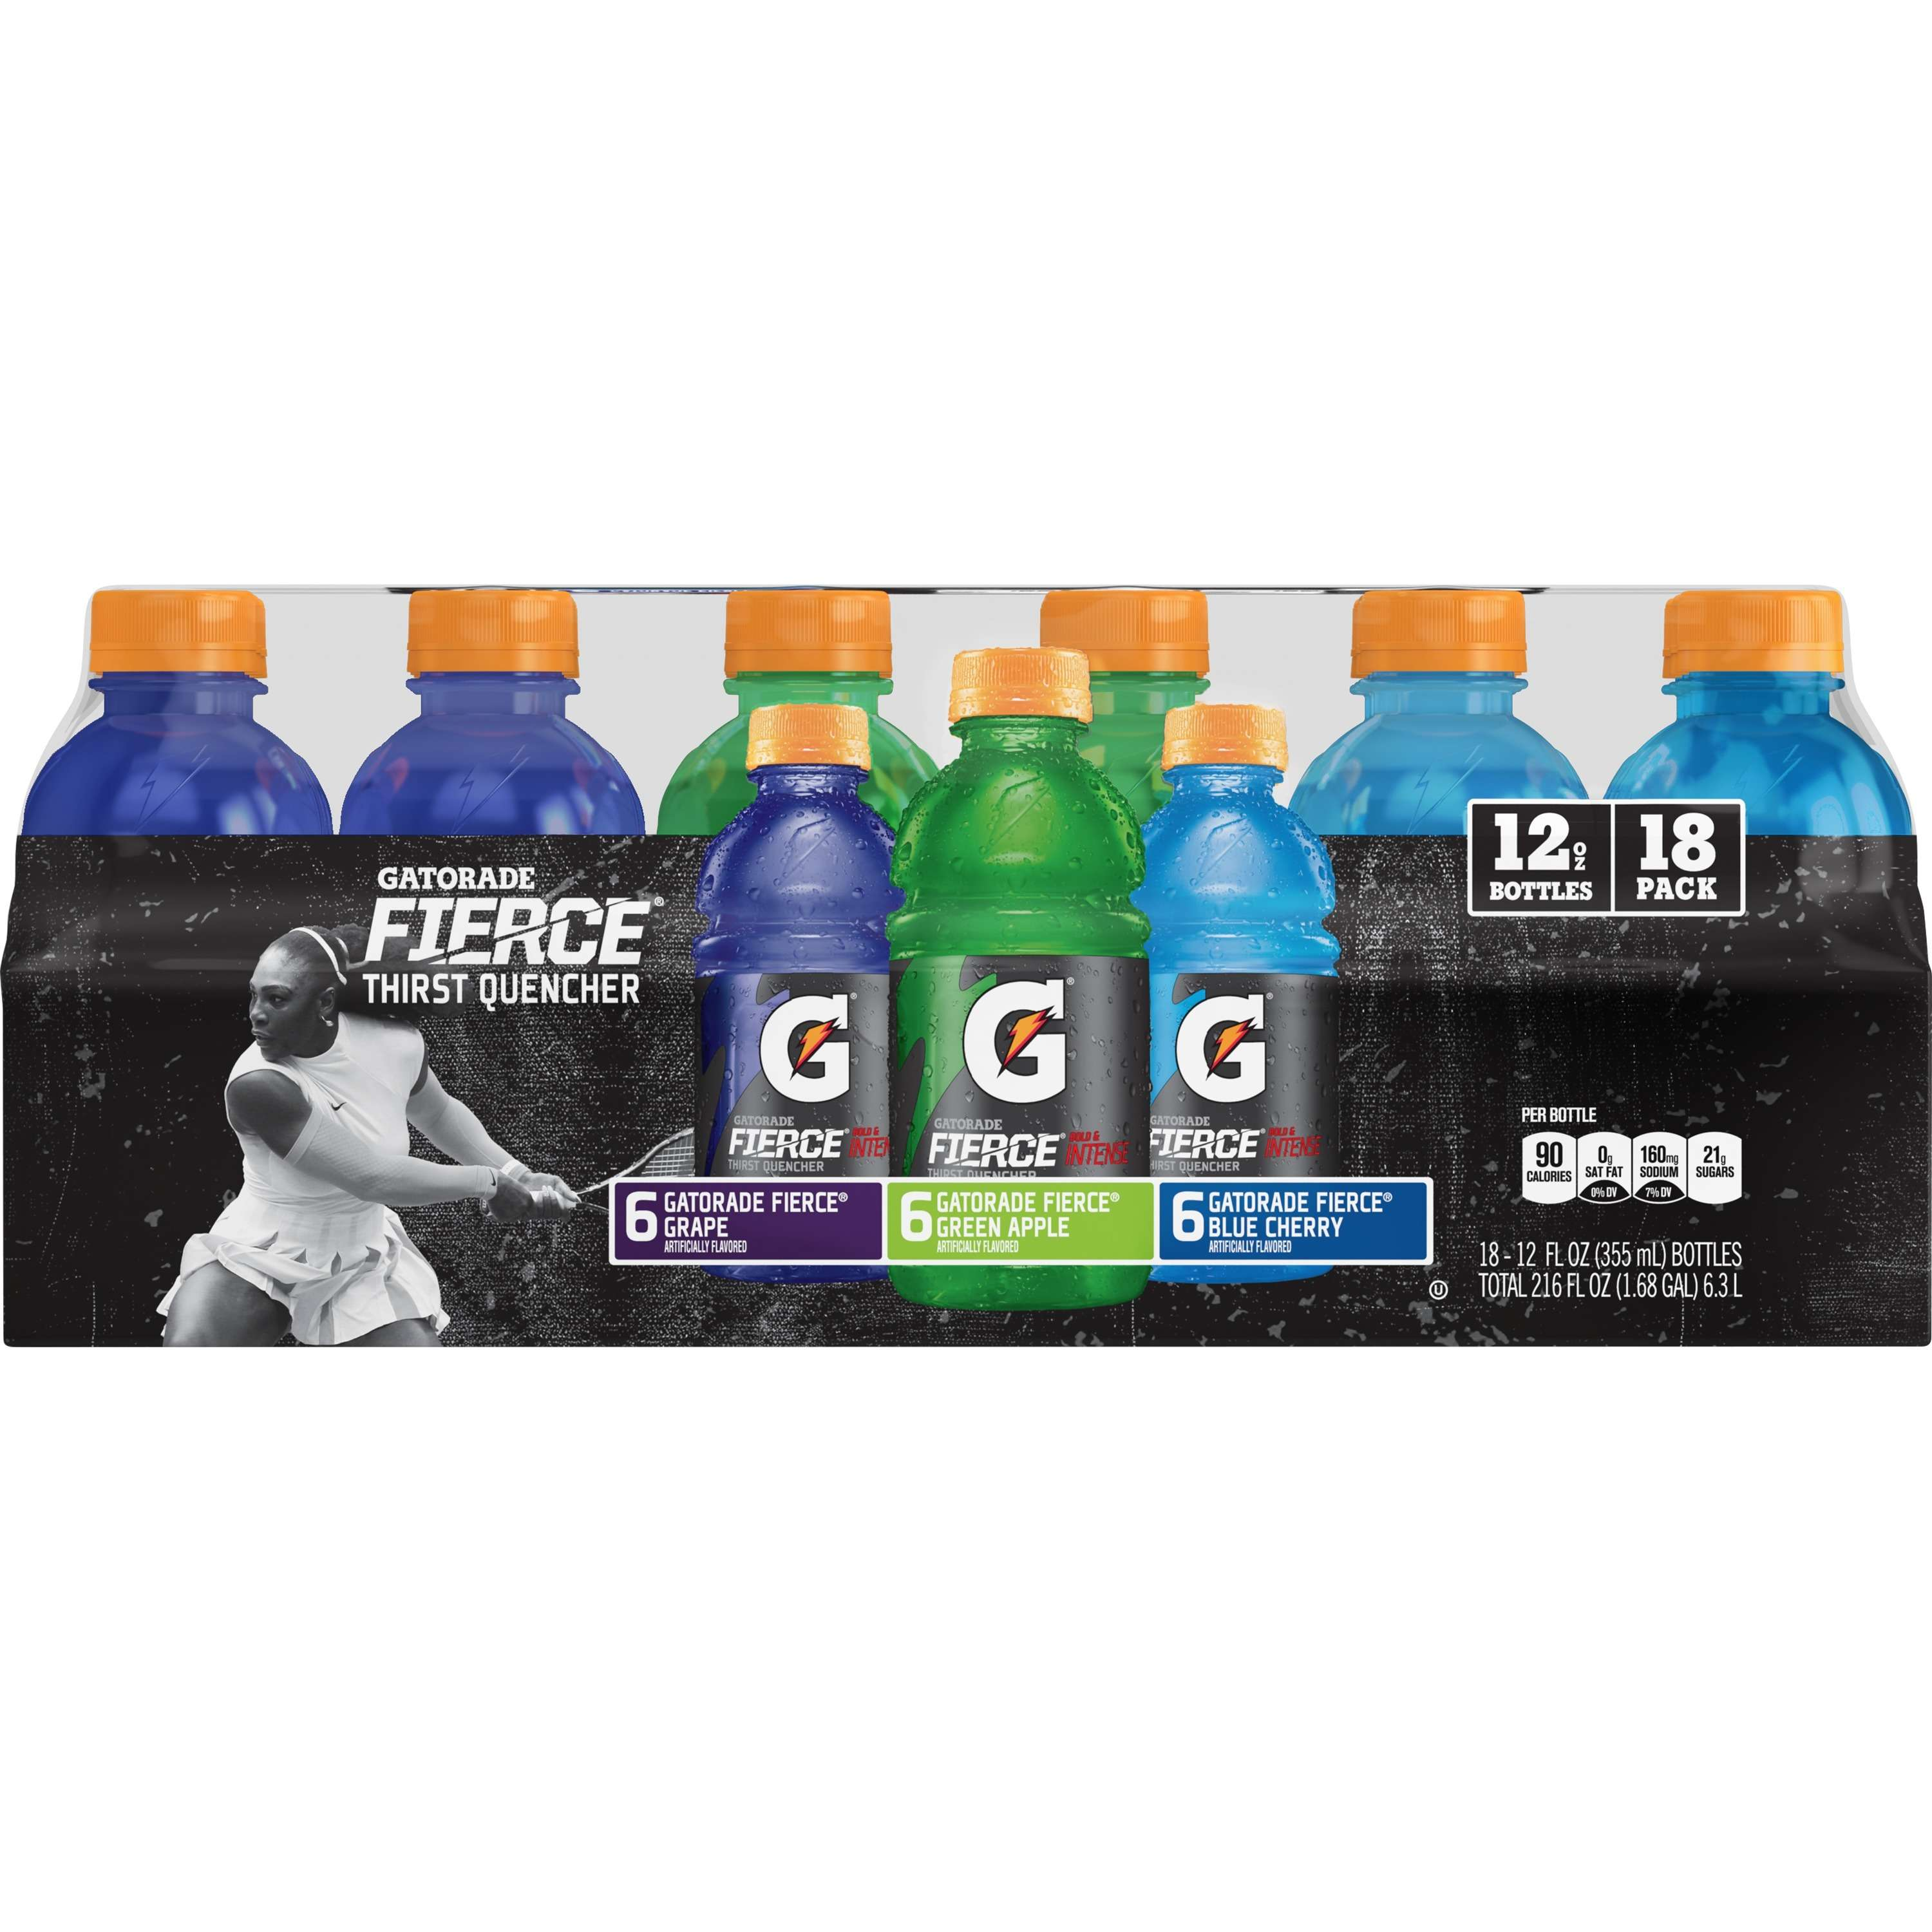 Gatorade Thirst Quencher Sports Drink, Fierce Variety Pack, 12 Fl Oz, 18 Count